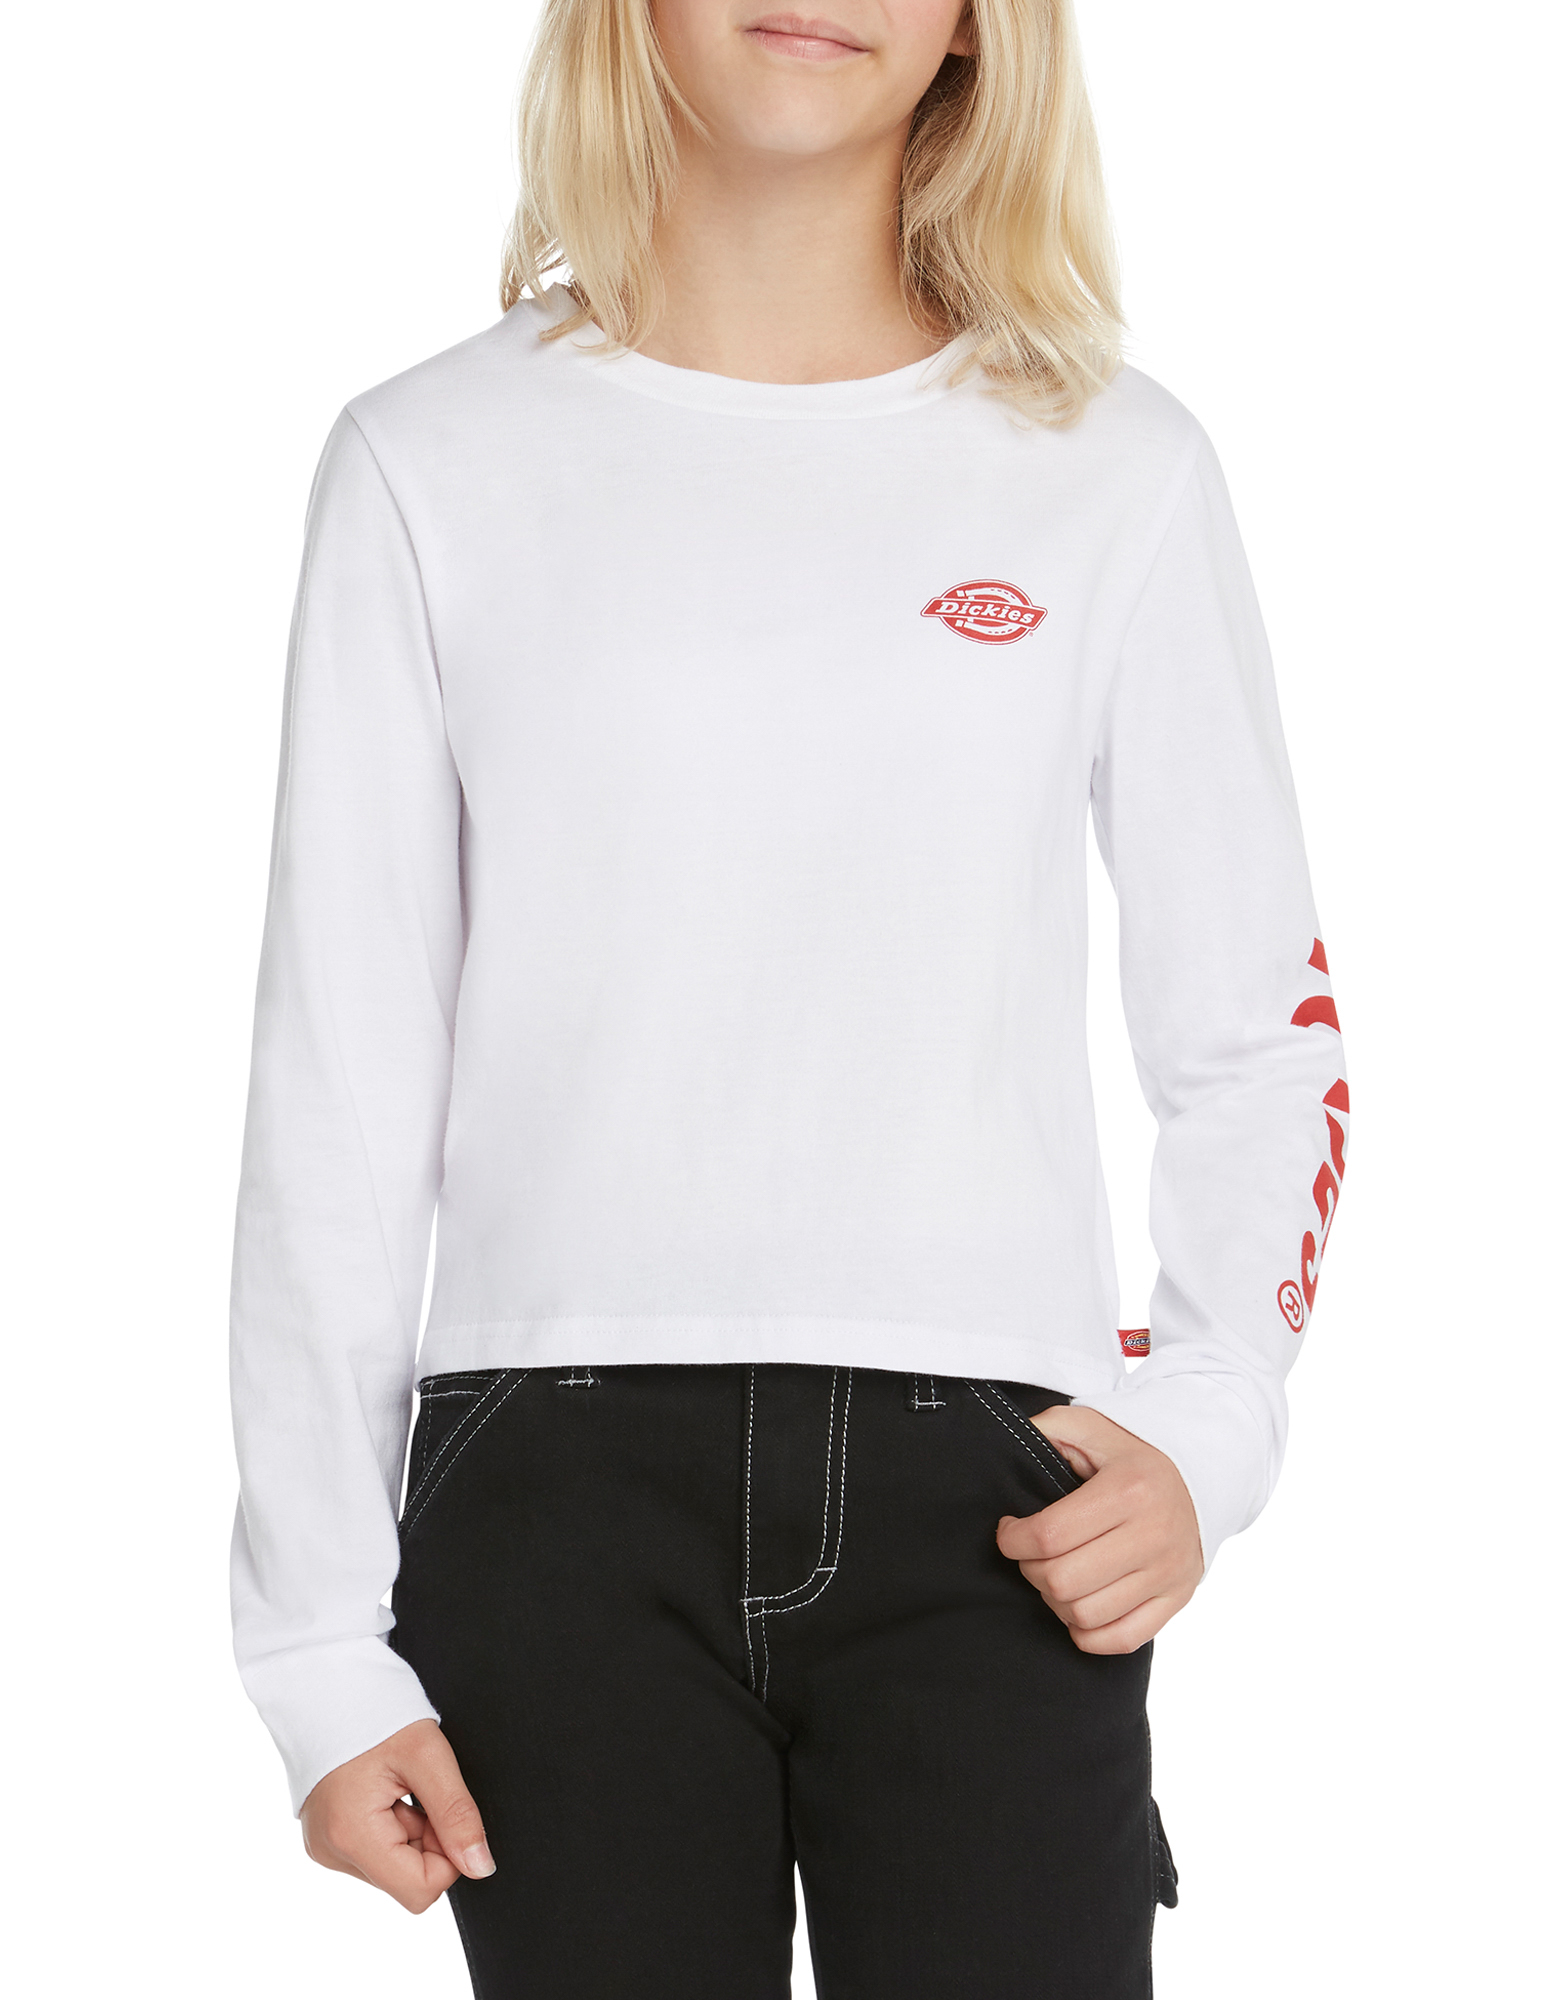 Girls' Long Sleeve Cropped Logo T-Shirt - White (WH)